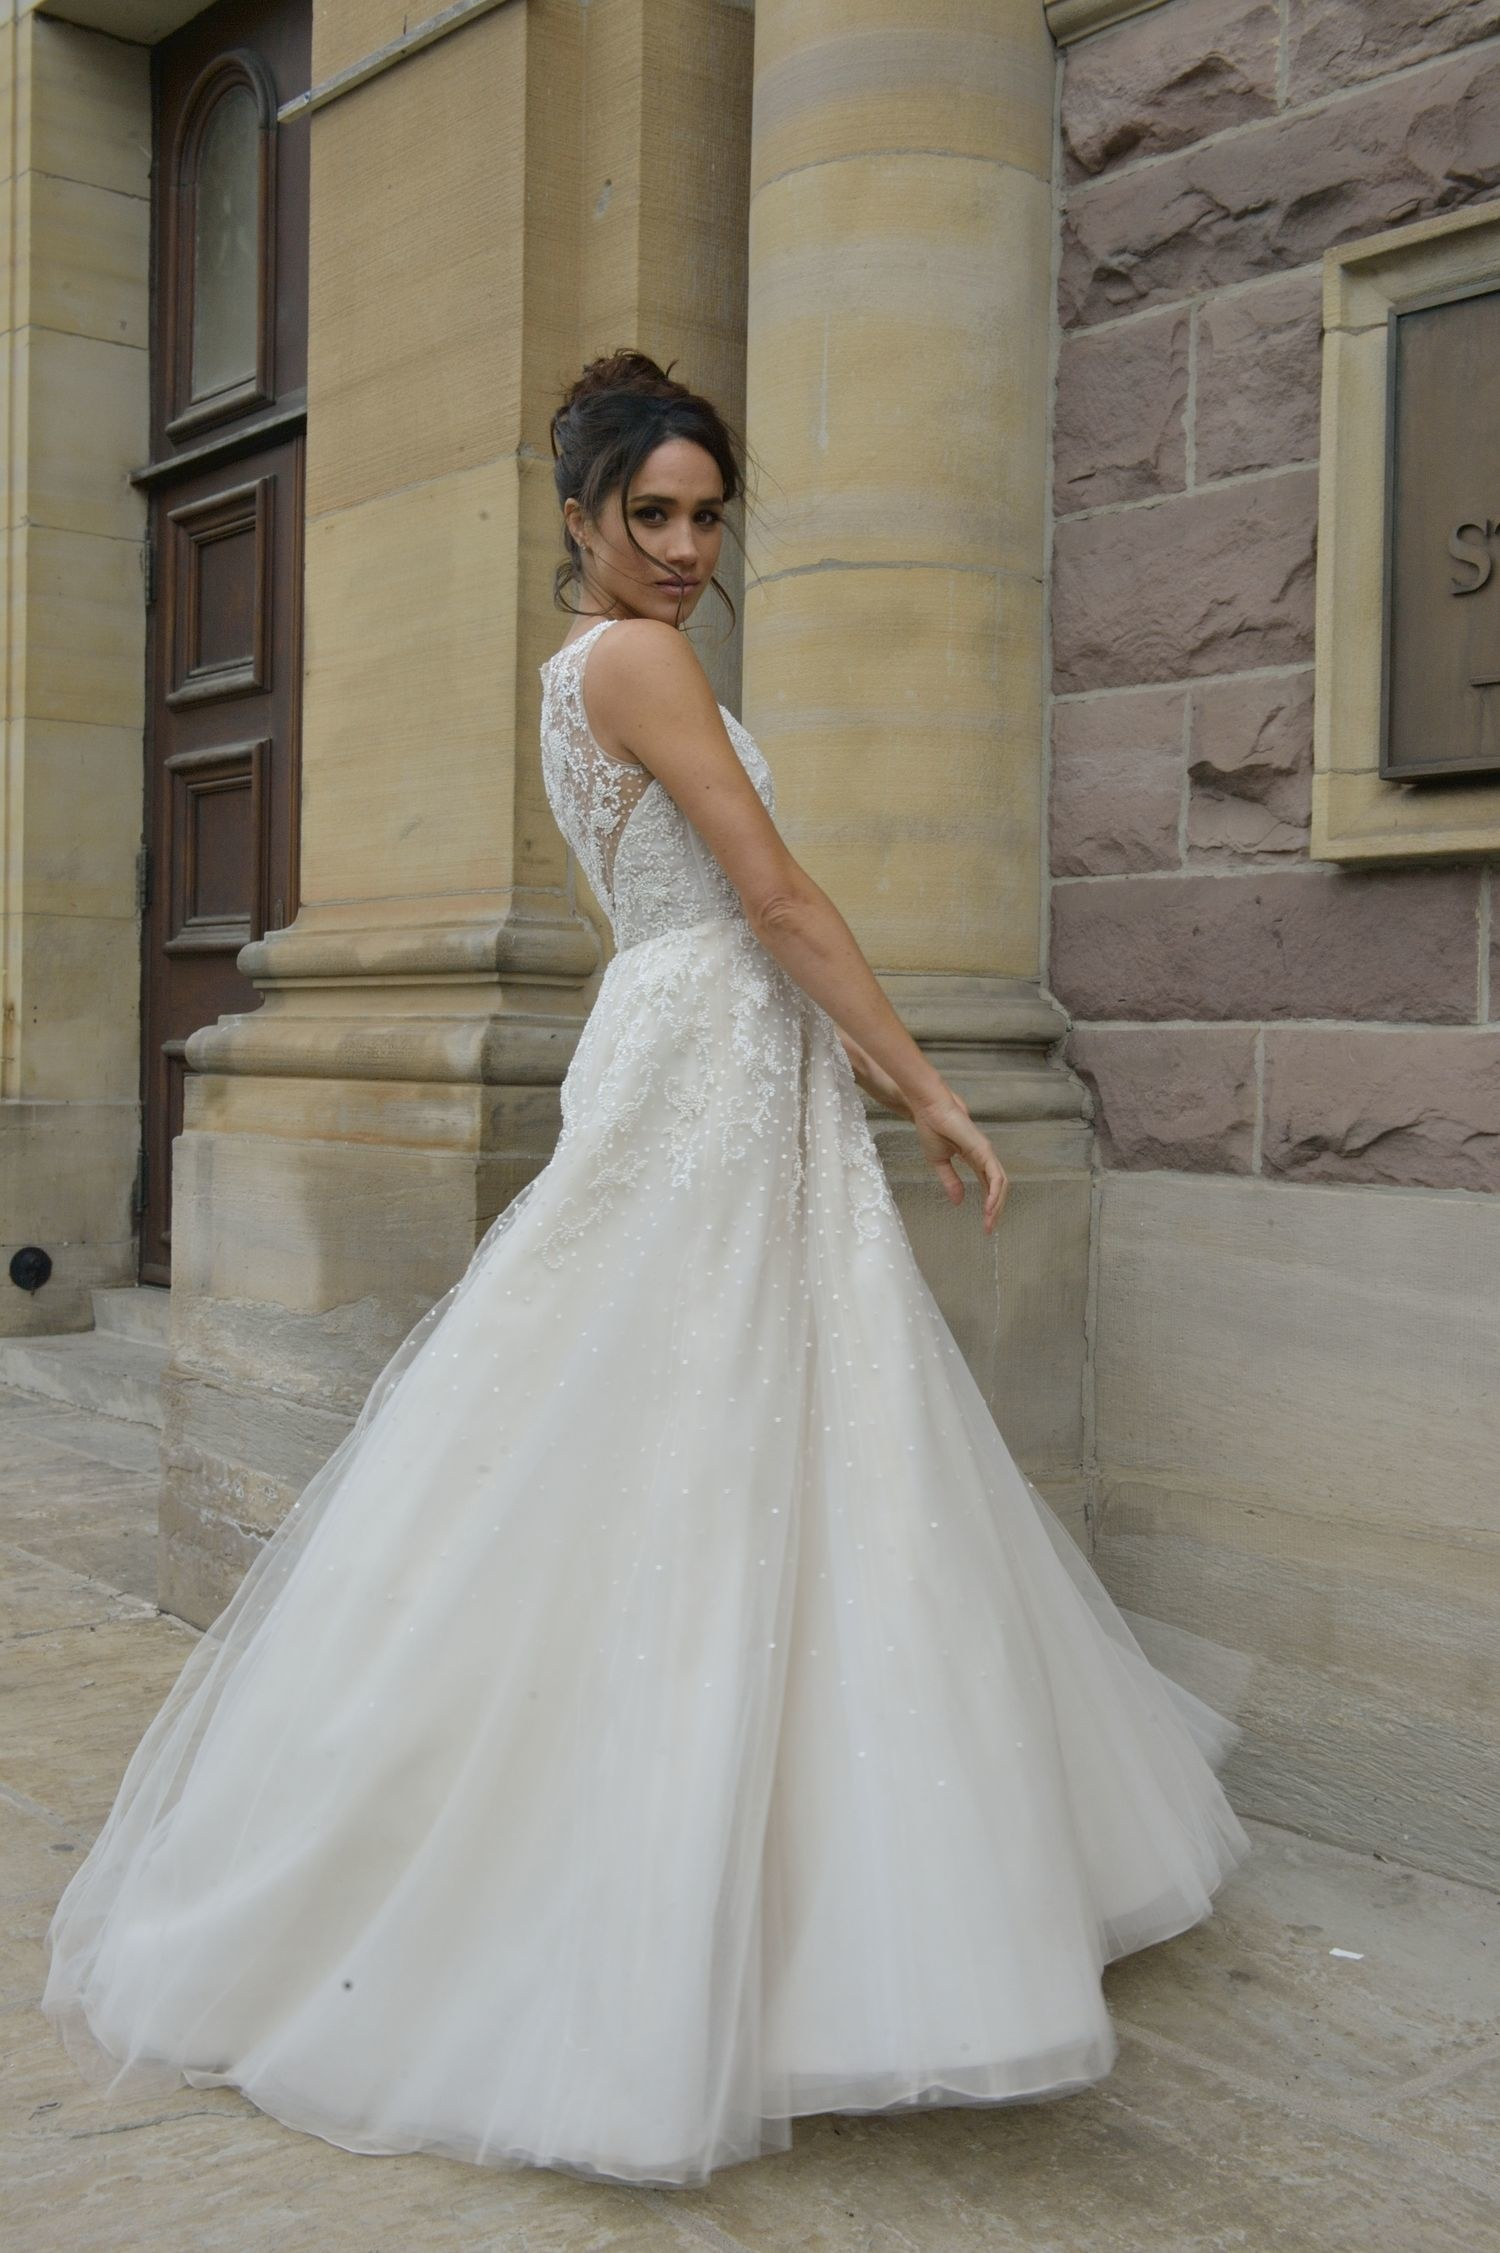 Who Designed Megan S Wedding Dress.Meghan Markle S Tiara For The Royal Wedding Which One Will She